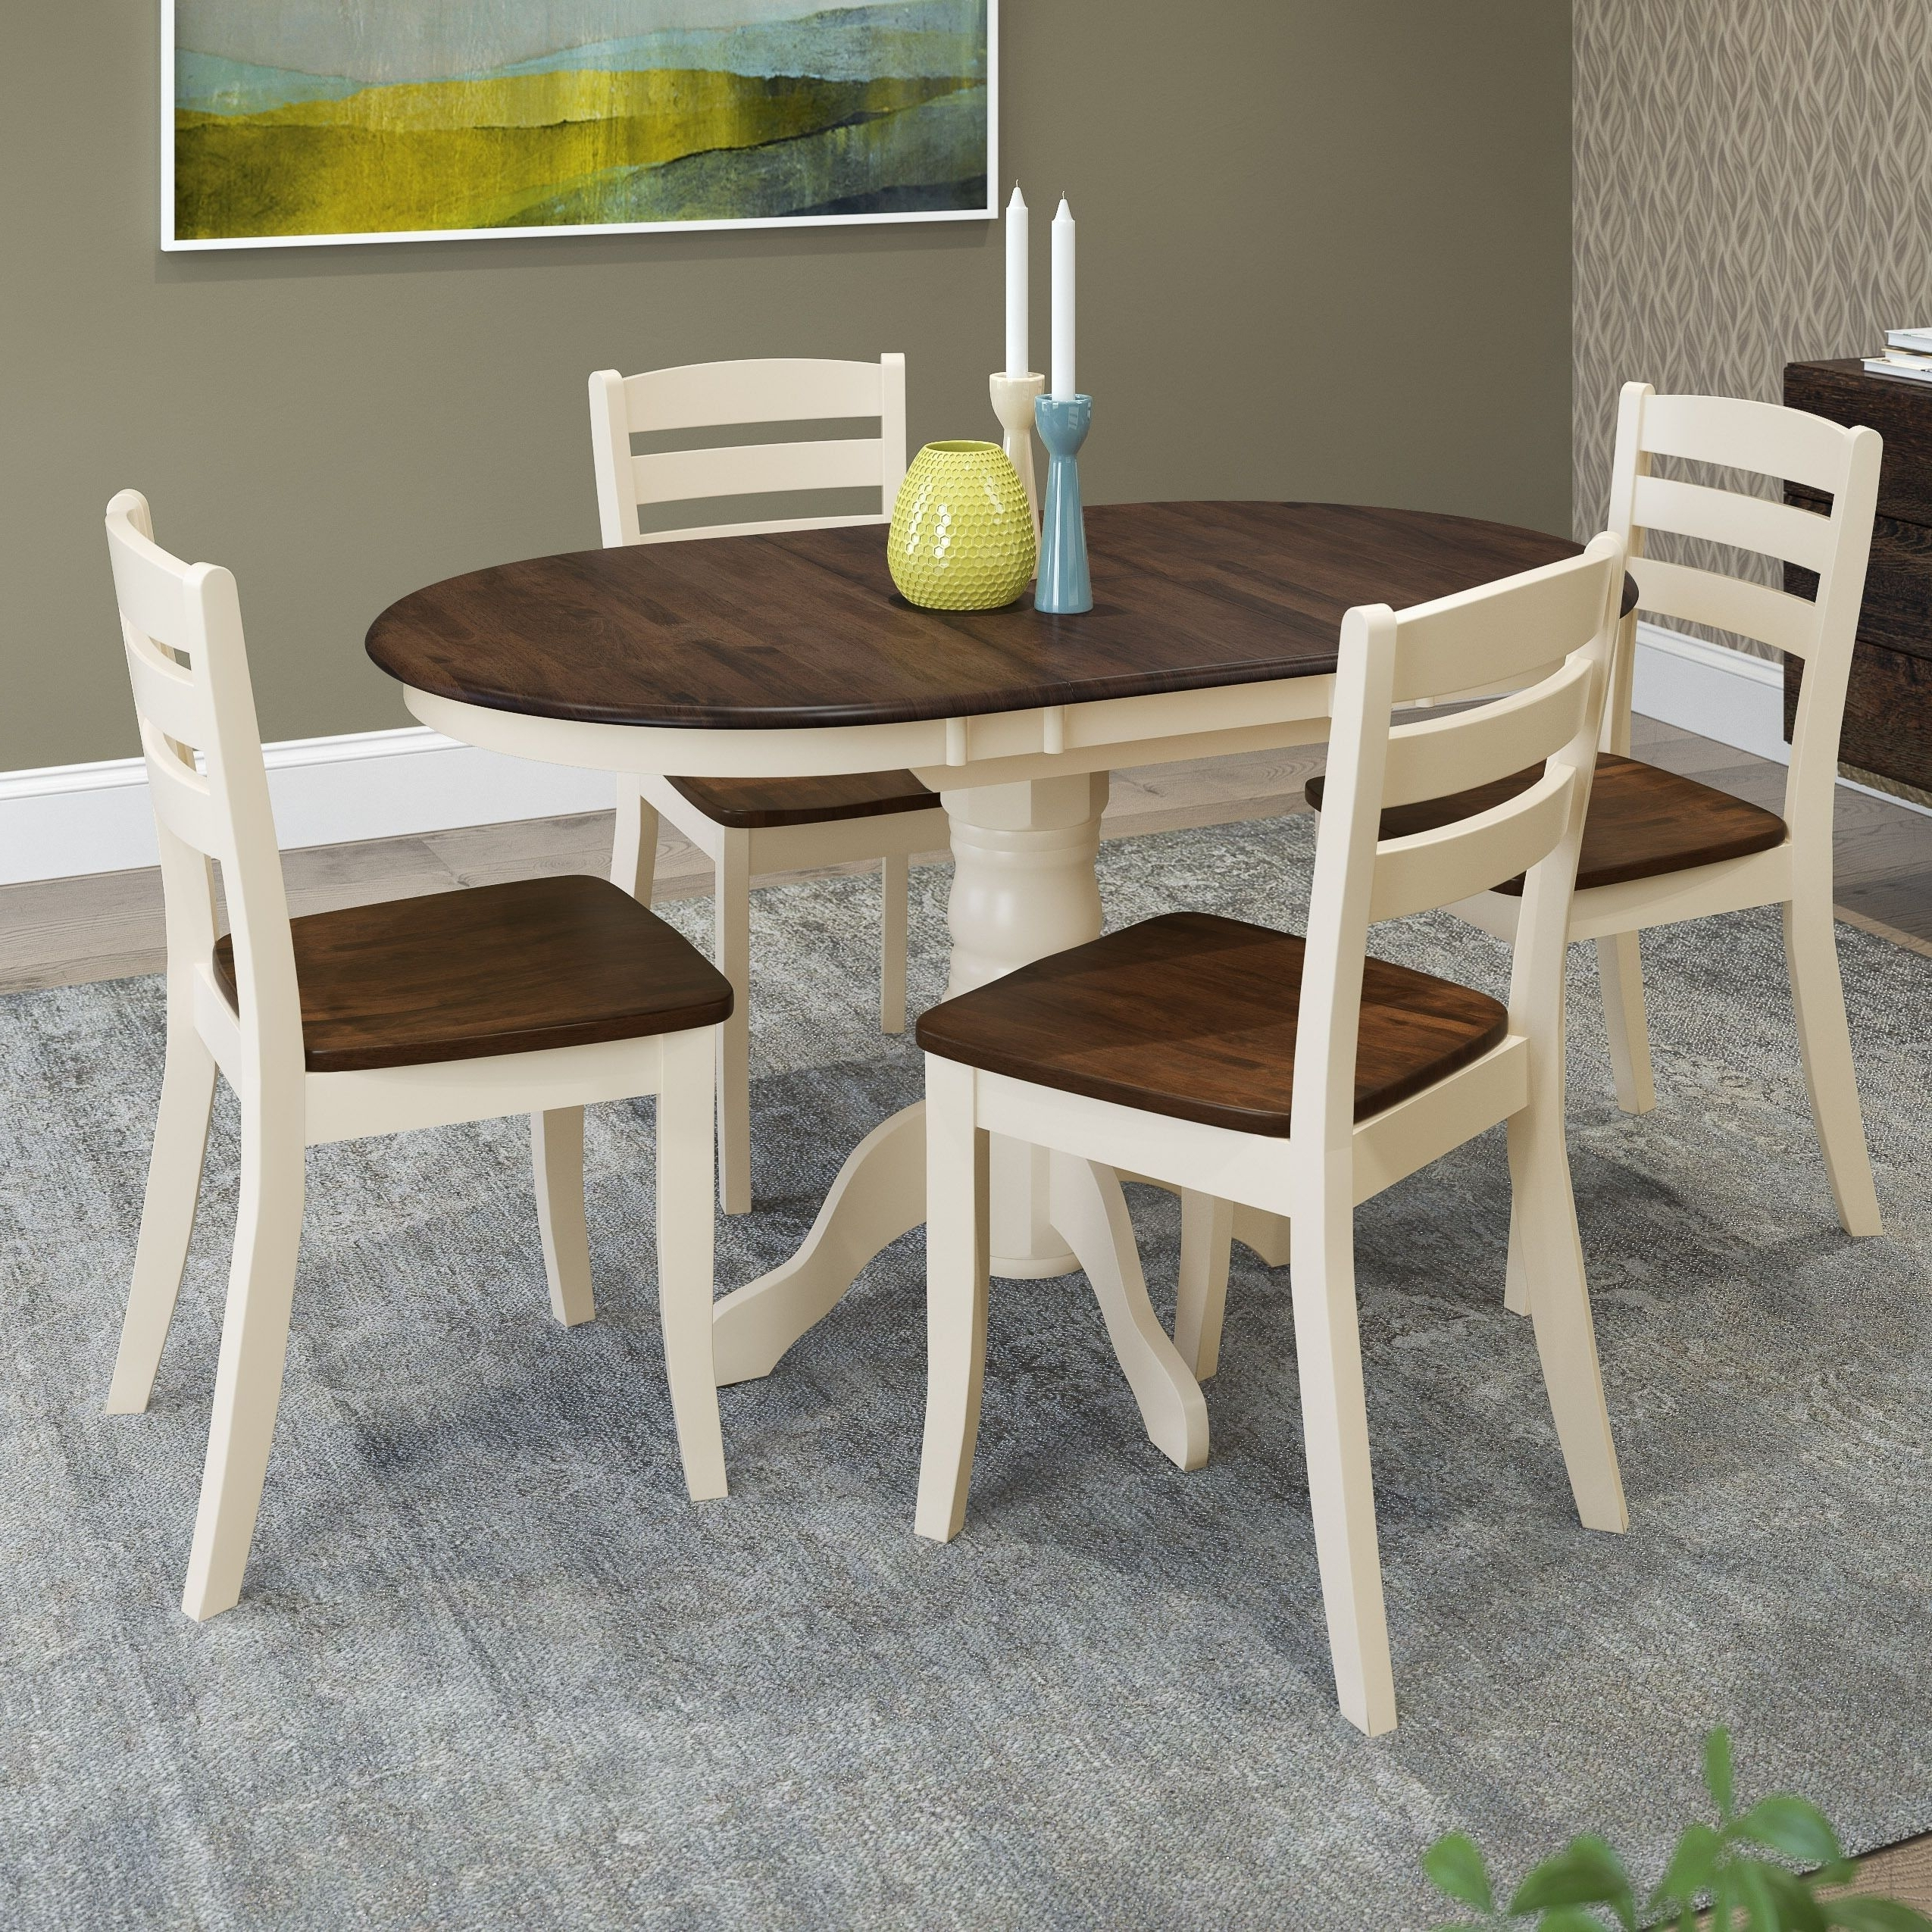 2018 Dark Solid Wood Dining Tables Intended For Corliving Dillon 5 Piece Extendable Dark Brown And Cream Solid Wood (Gallery 21 of 25)